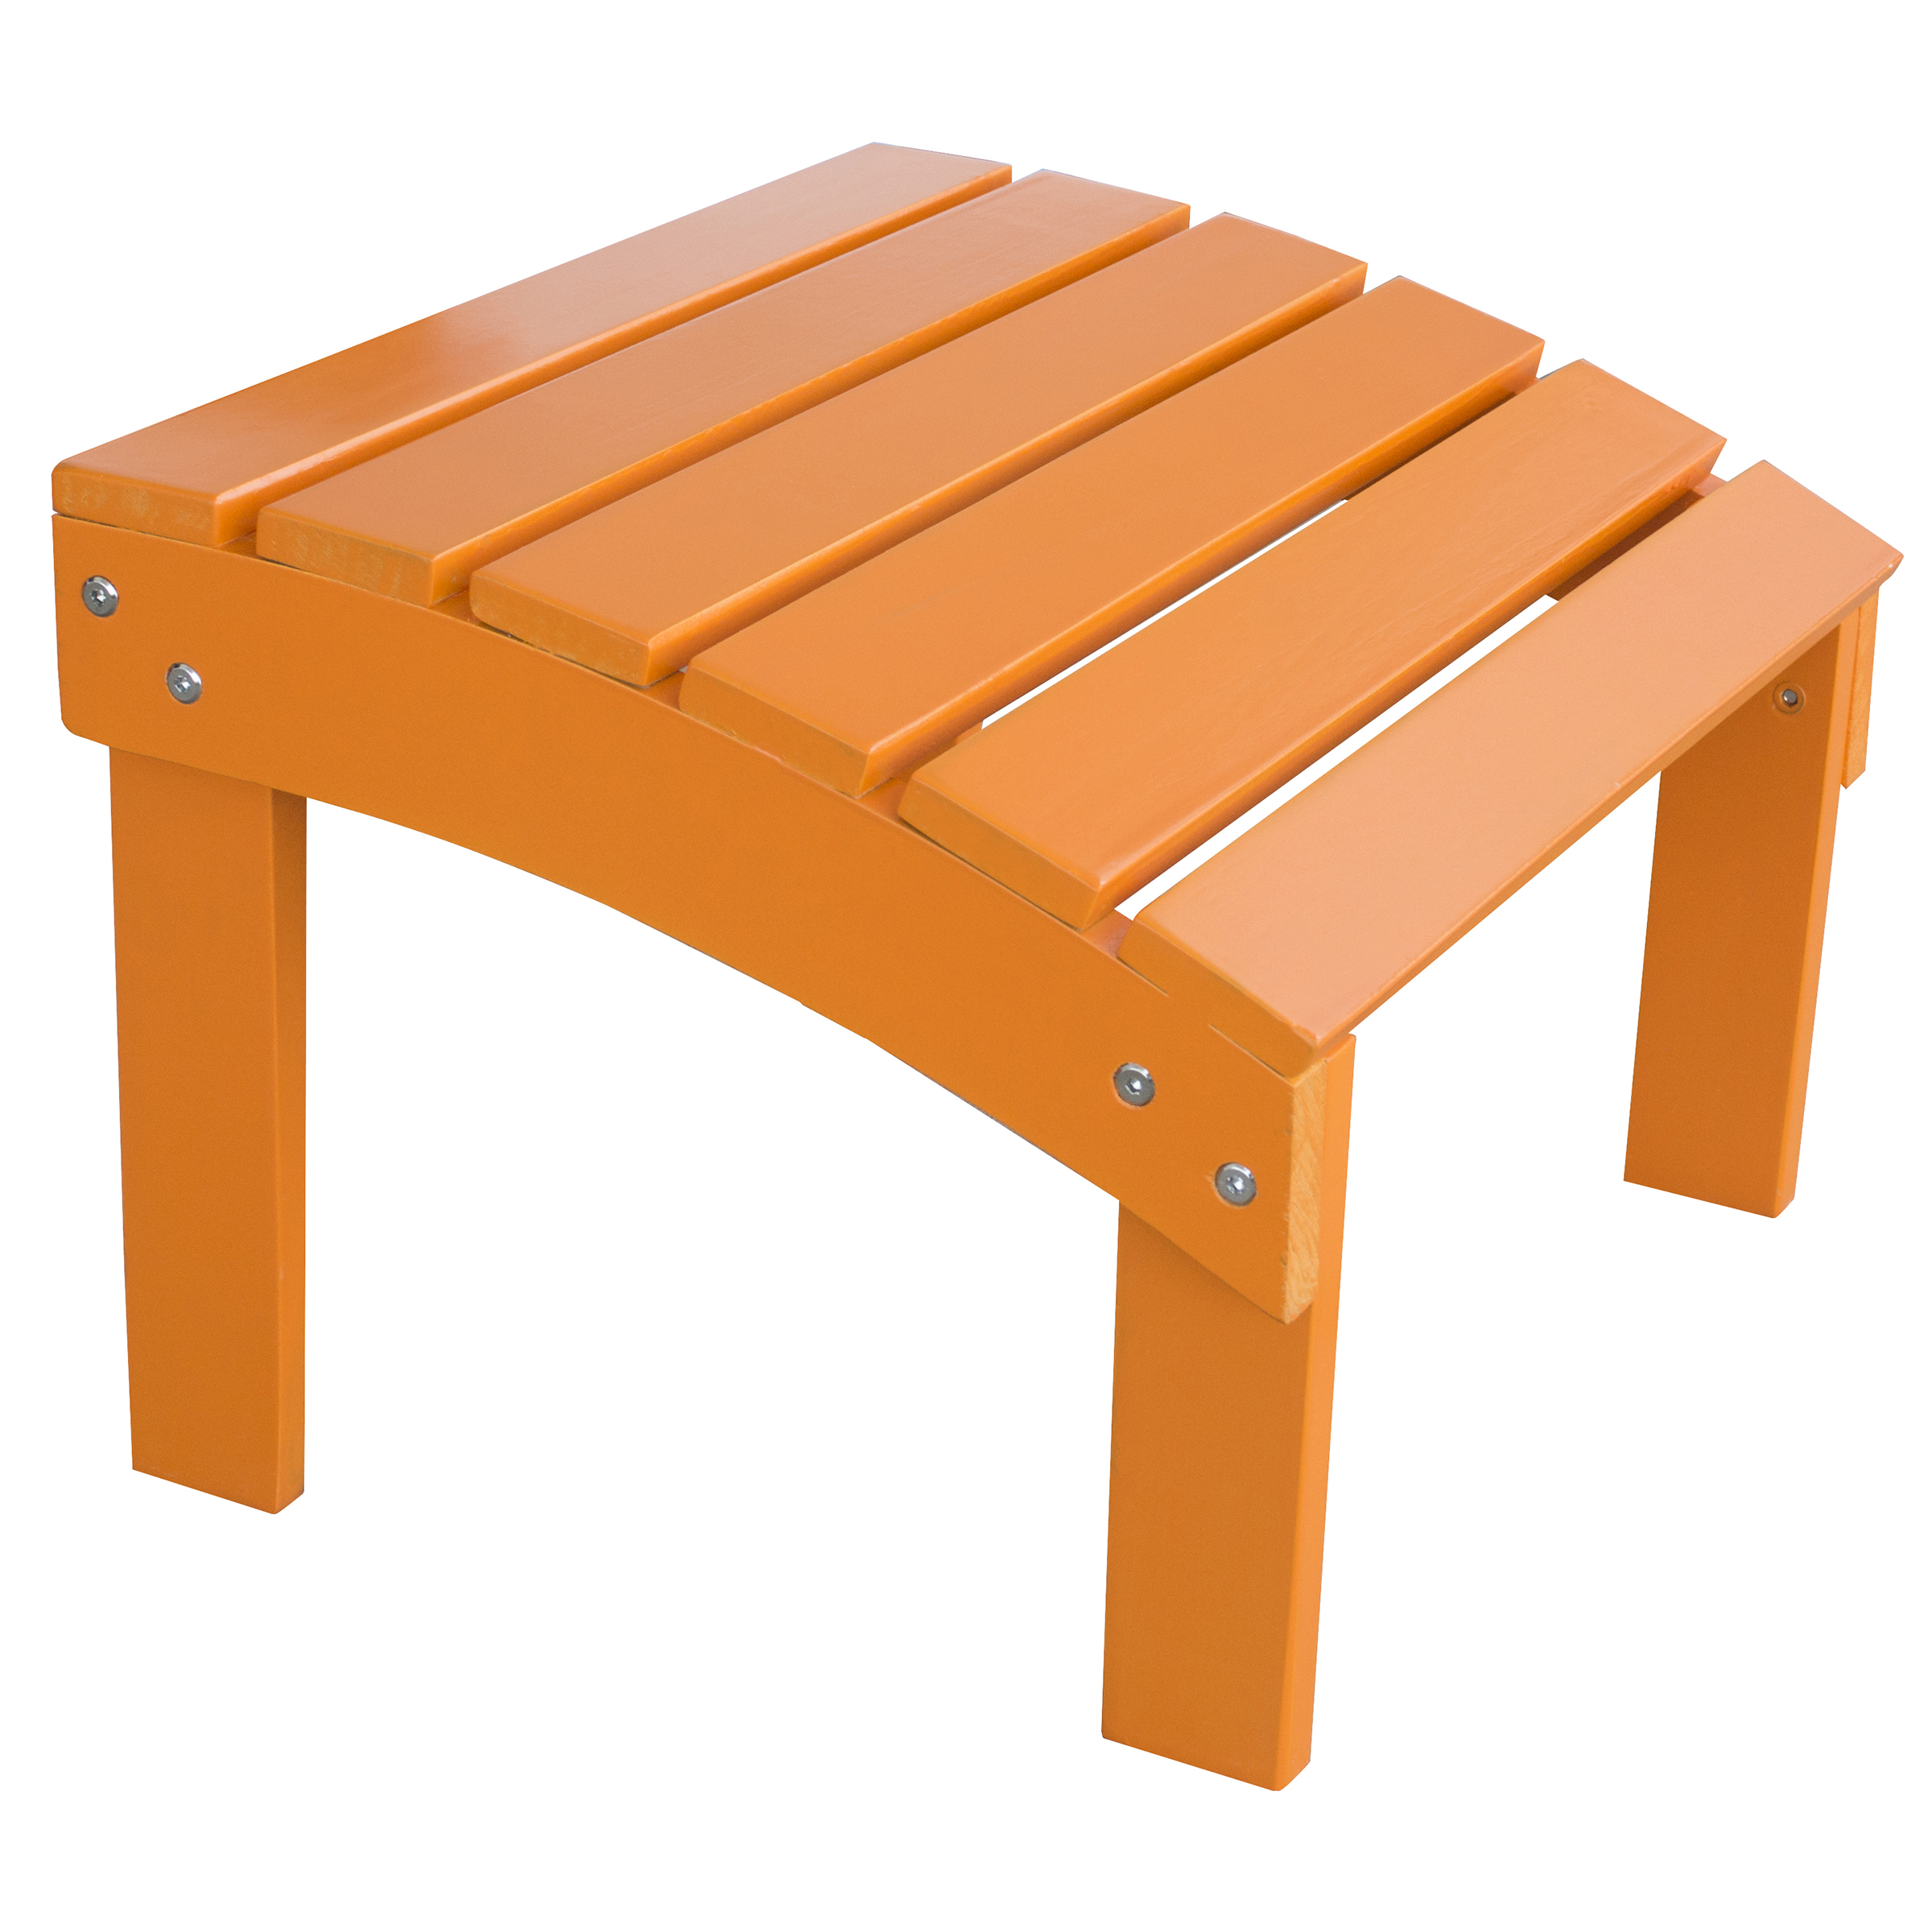 Solid Wood Adirondack Footrest  Ottoman with Painted Finish - Tangerine